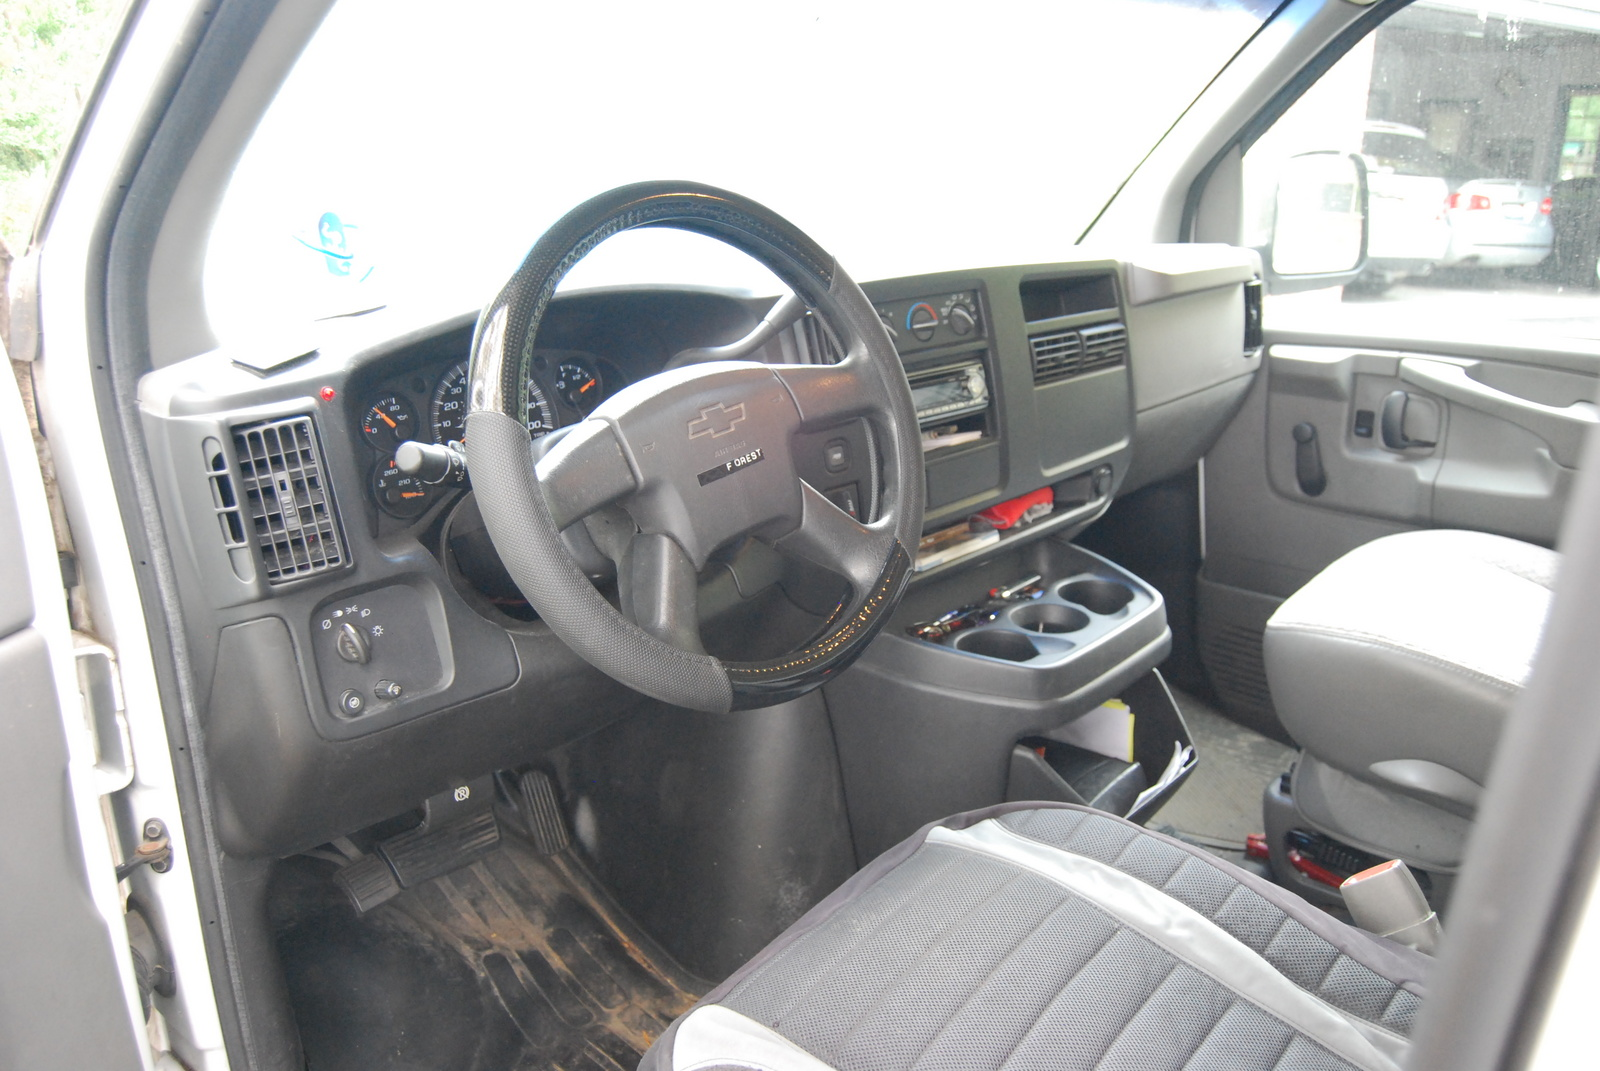 All Chevy 2003 chevy express van : 2003 Chevrolet Express - Information and photos - MOMENTcar